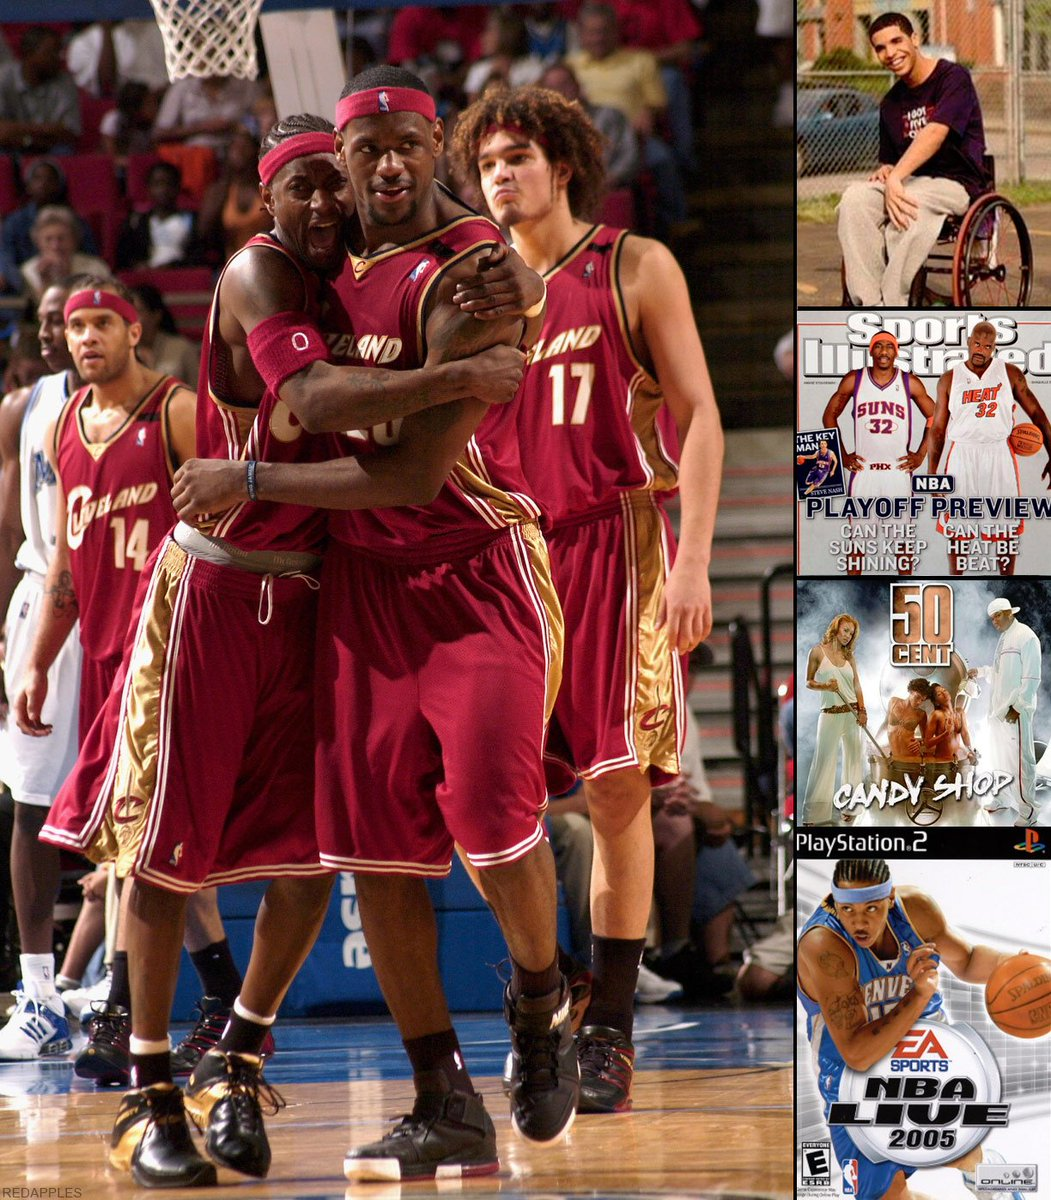 How old were you the last time LeBron missed the playoffs (April 2005)?